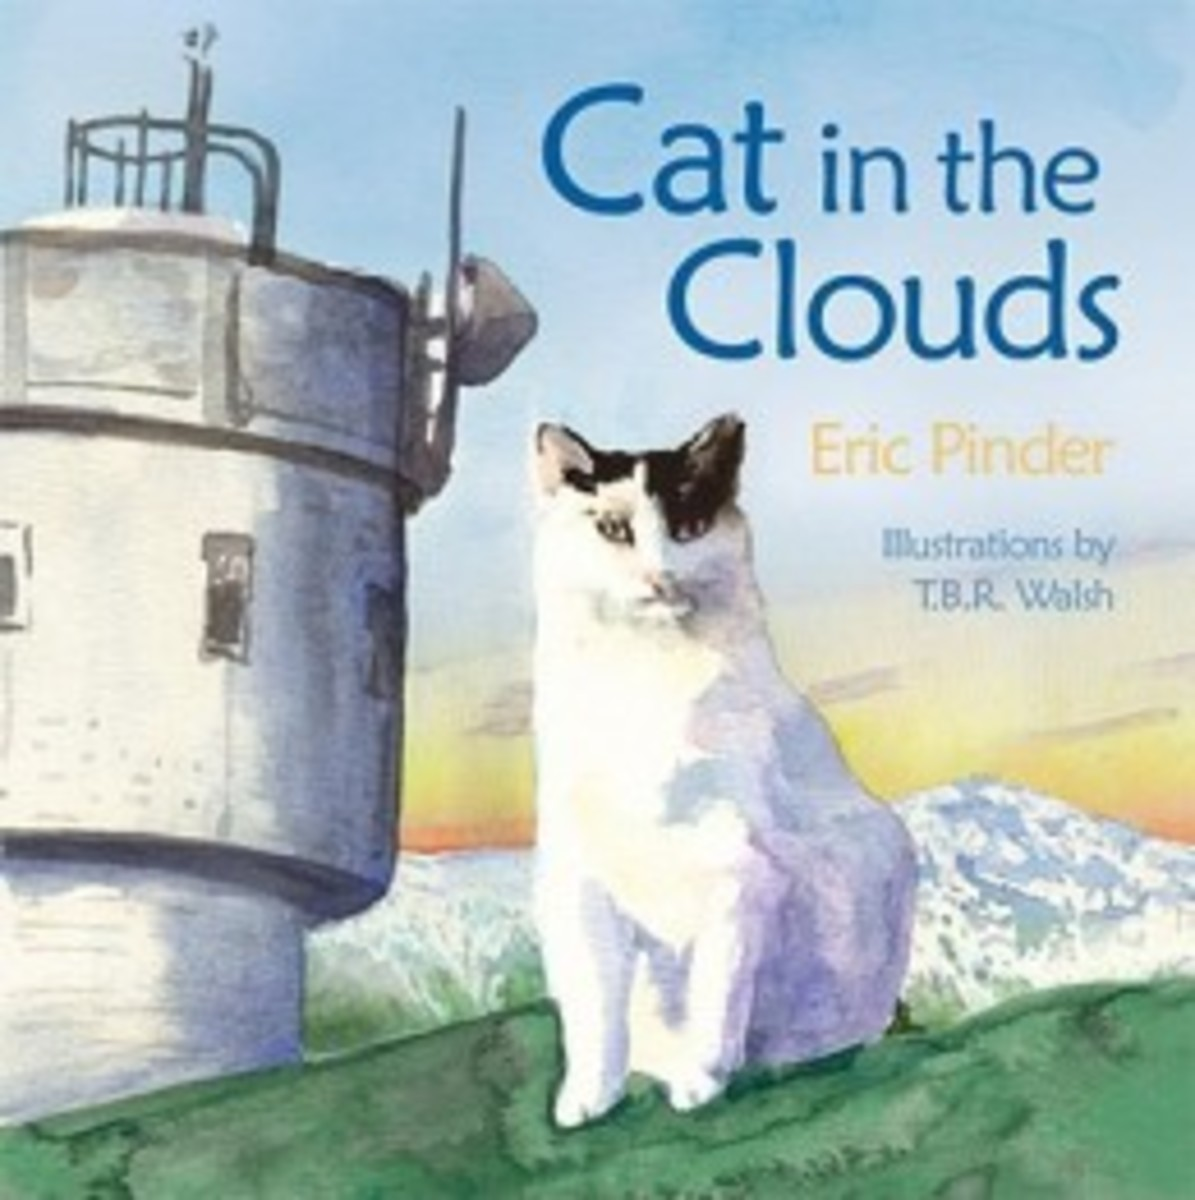 Cat in the Clouds by Eric Pinder (Image is from booksamillion.com.)